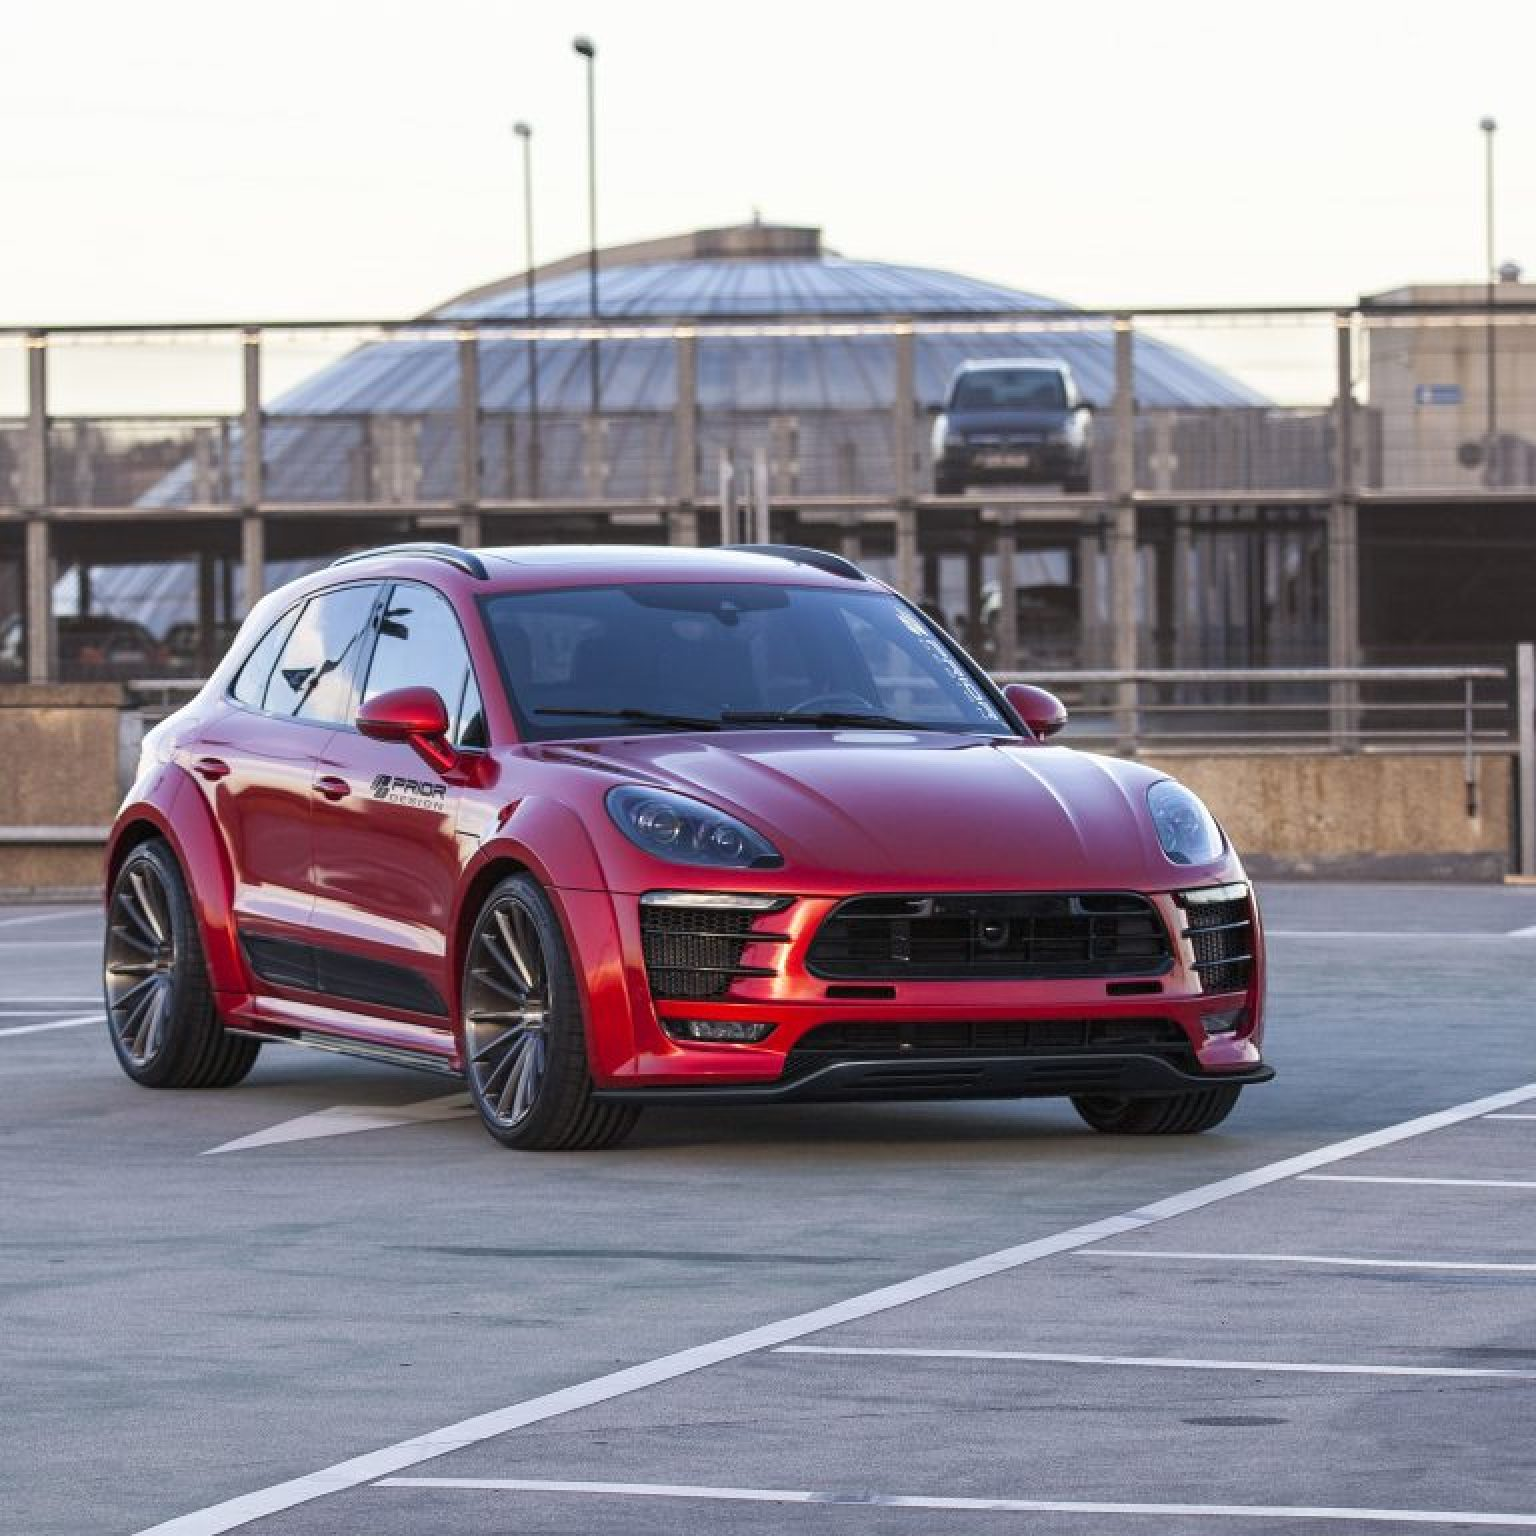 2016 Porsche Macan PD600m Widebody by Prior Design